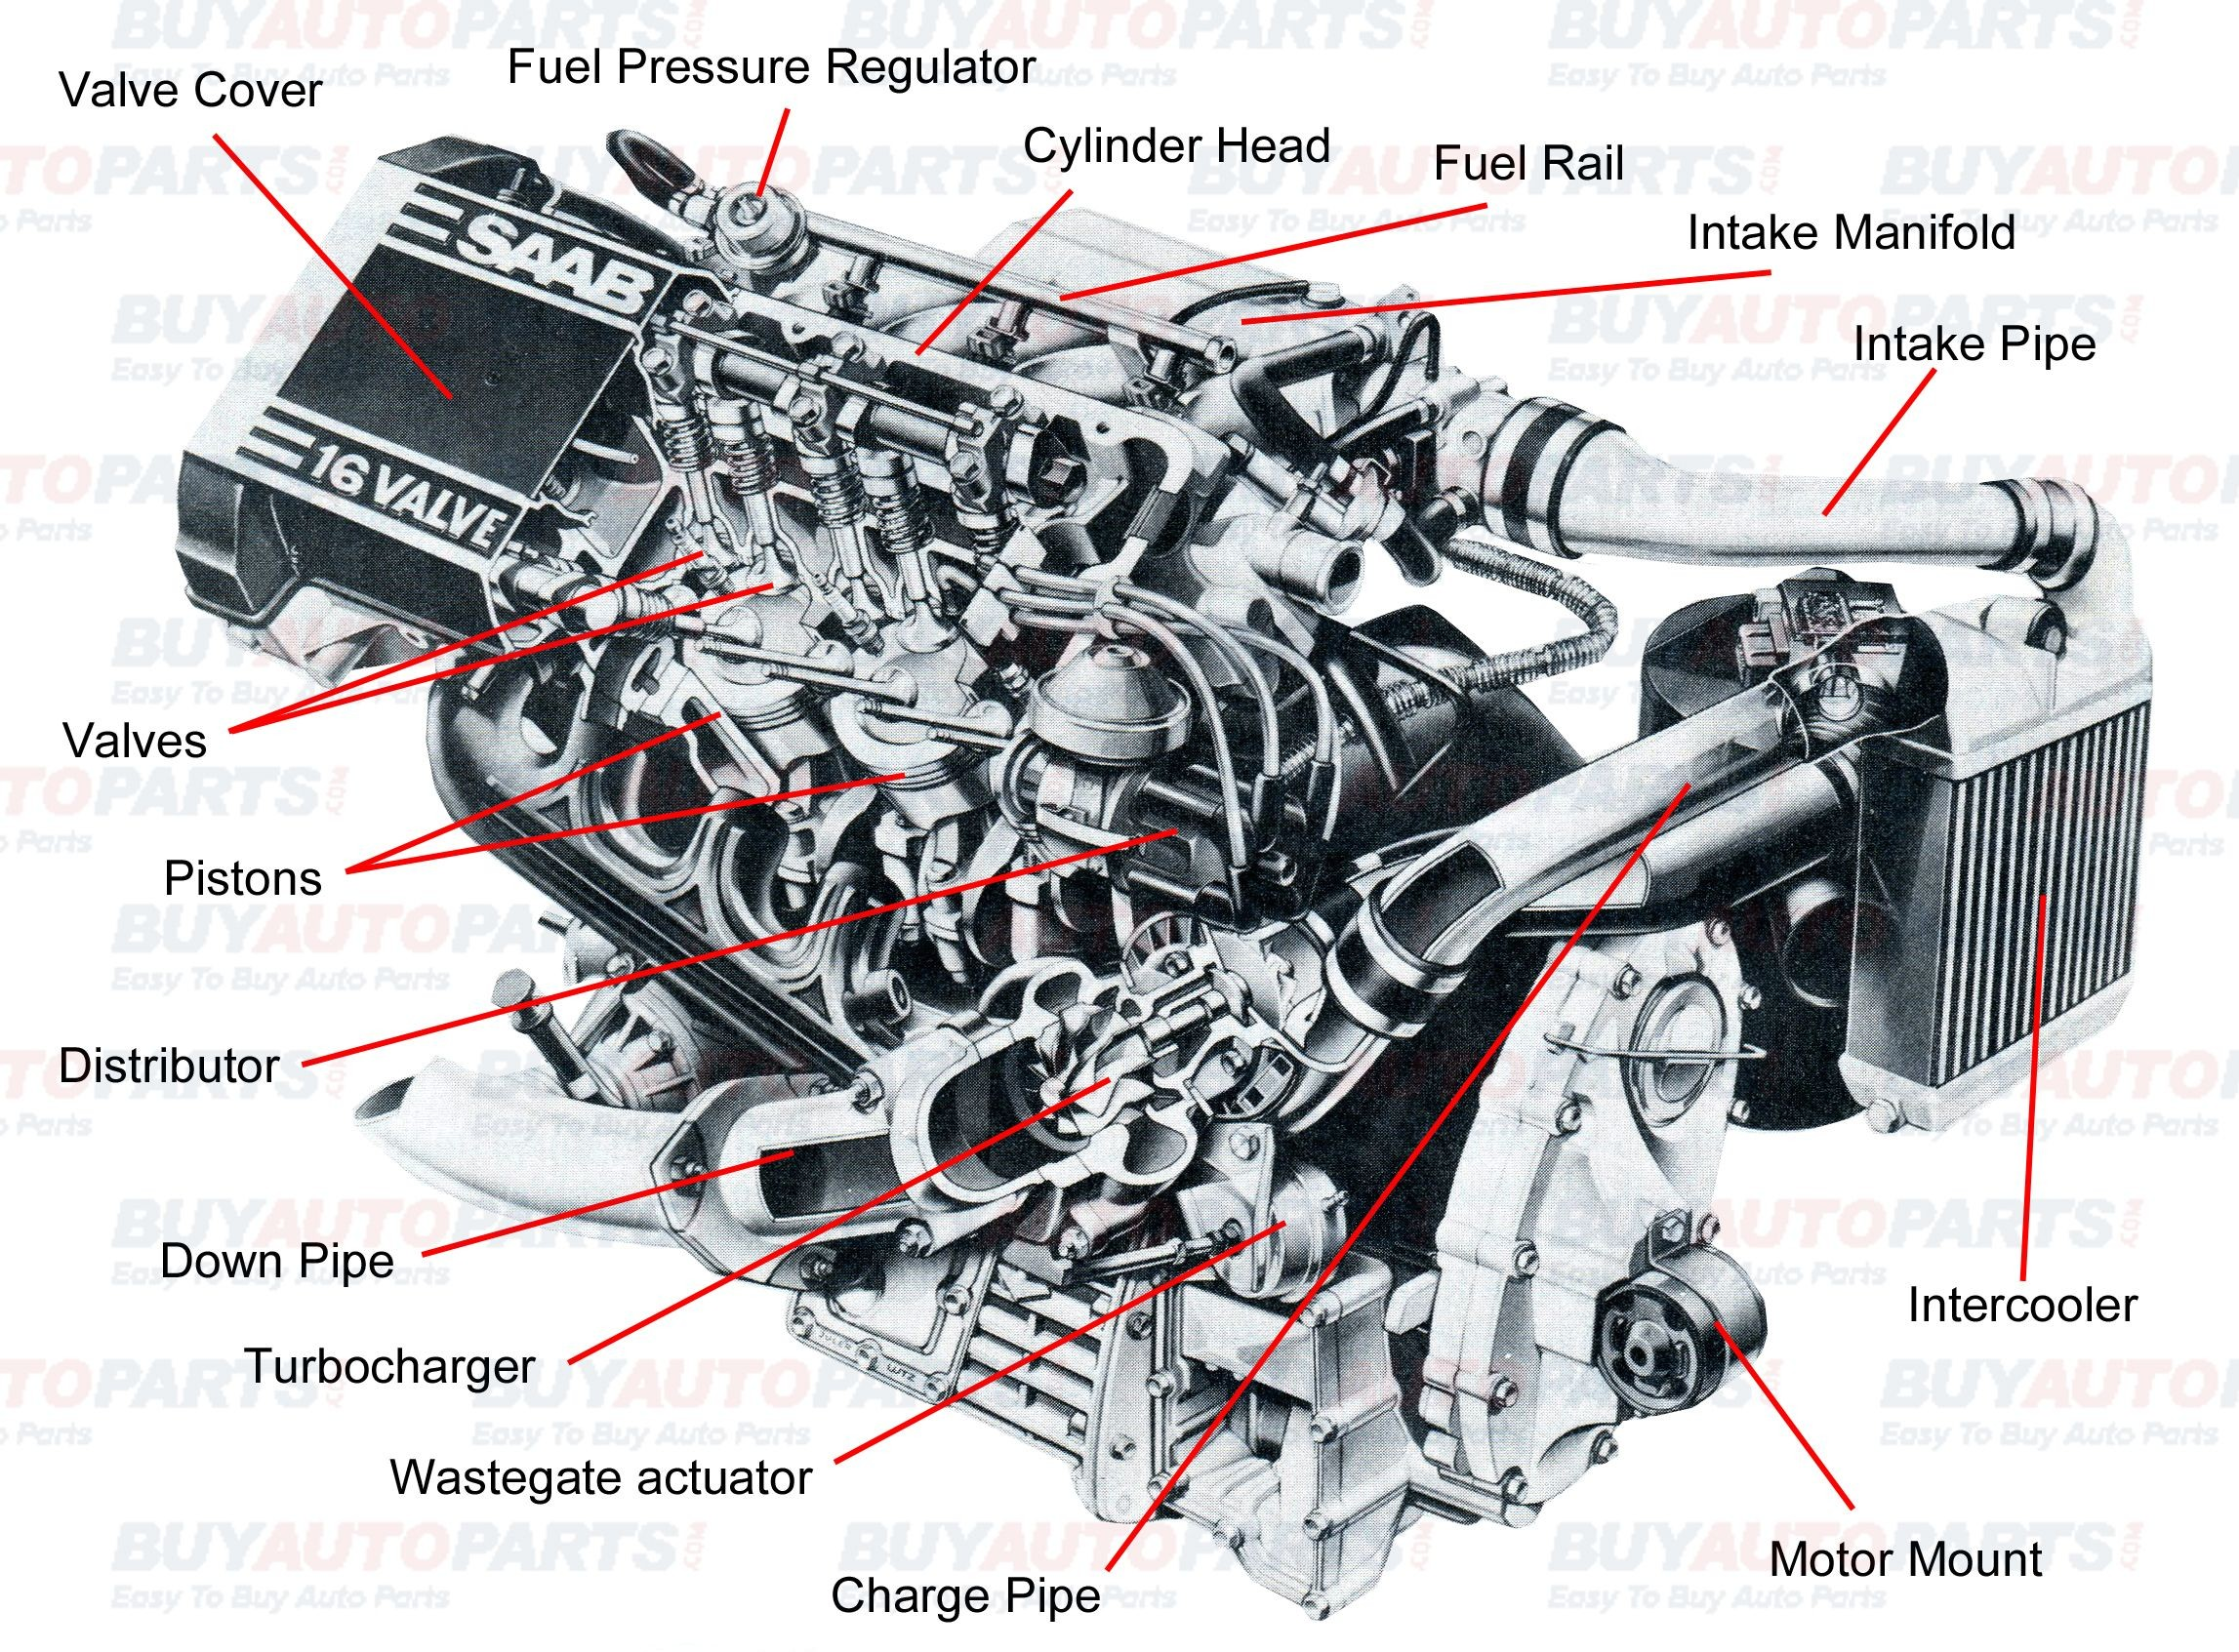 Diagram Of An Engine Block Pin by Jimmiejanet Testellamwfz On What Does An Engine with Turbo Of Diagram Of An Engine Block